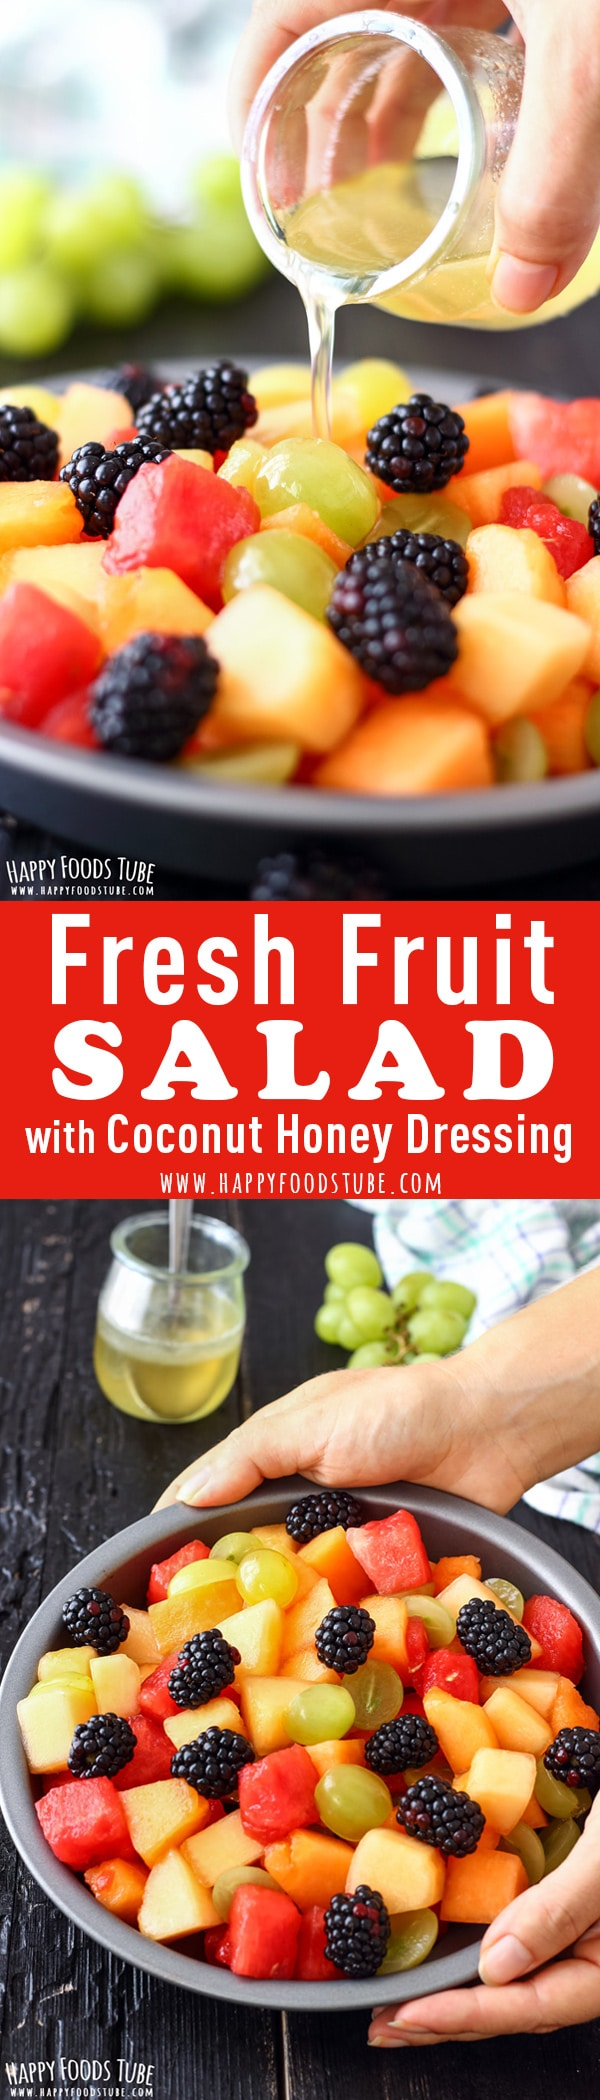 This fresh fruit salad with coconut honey dressing is a refreshing and easy summer dessert. Selection of fruits is dressed with easy flavorful syrup. How to make a fruit salad step by step